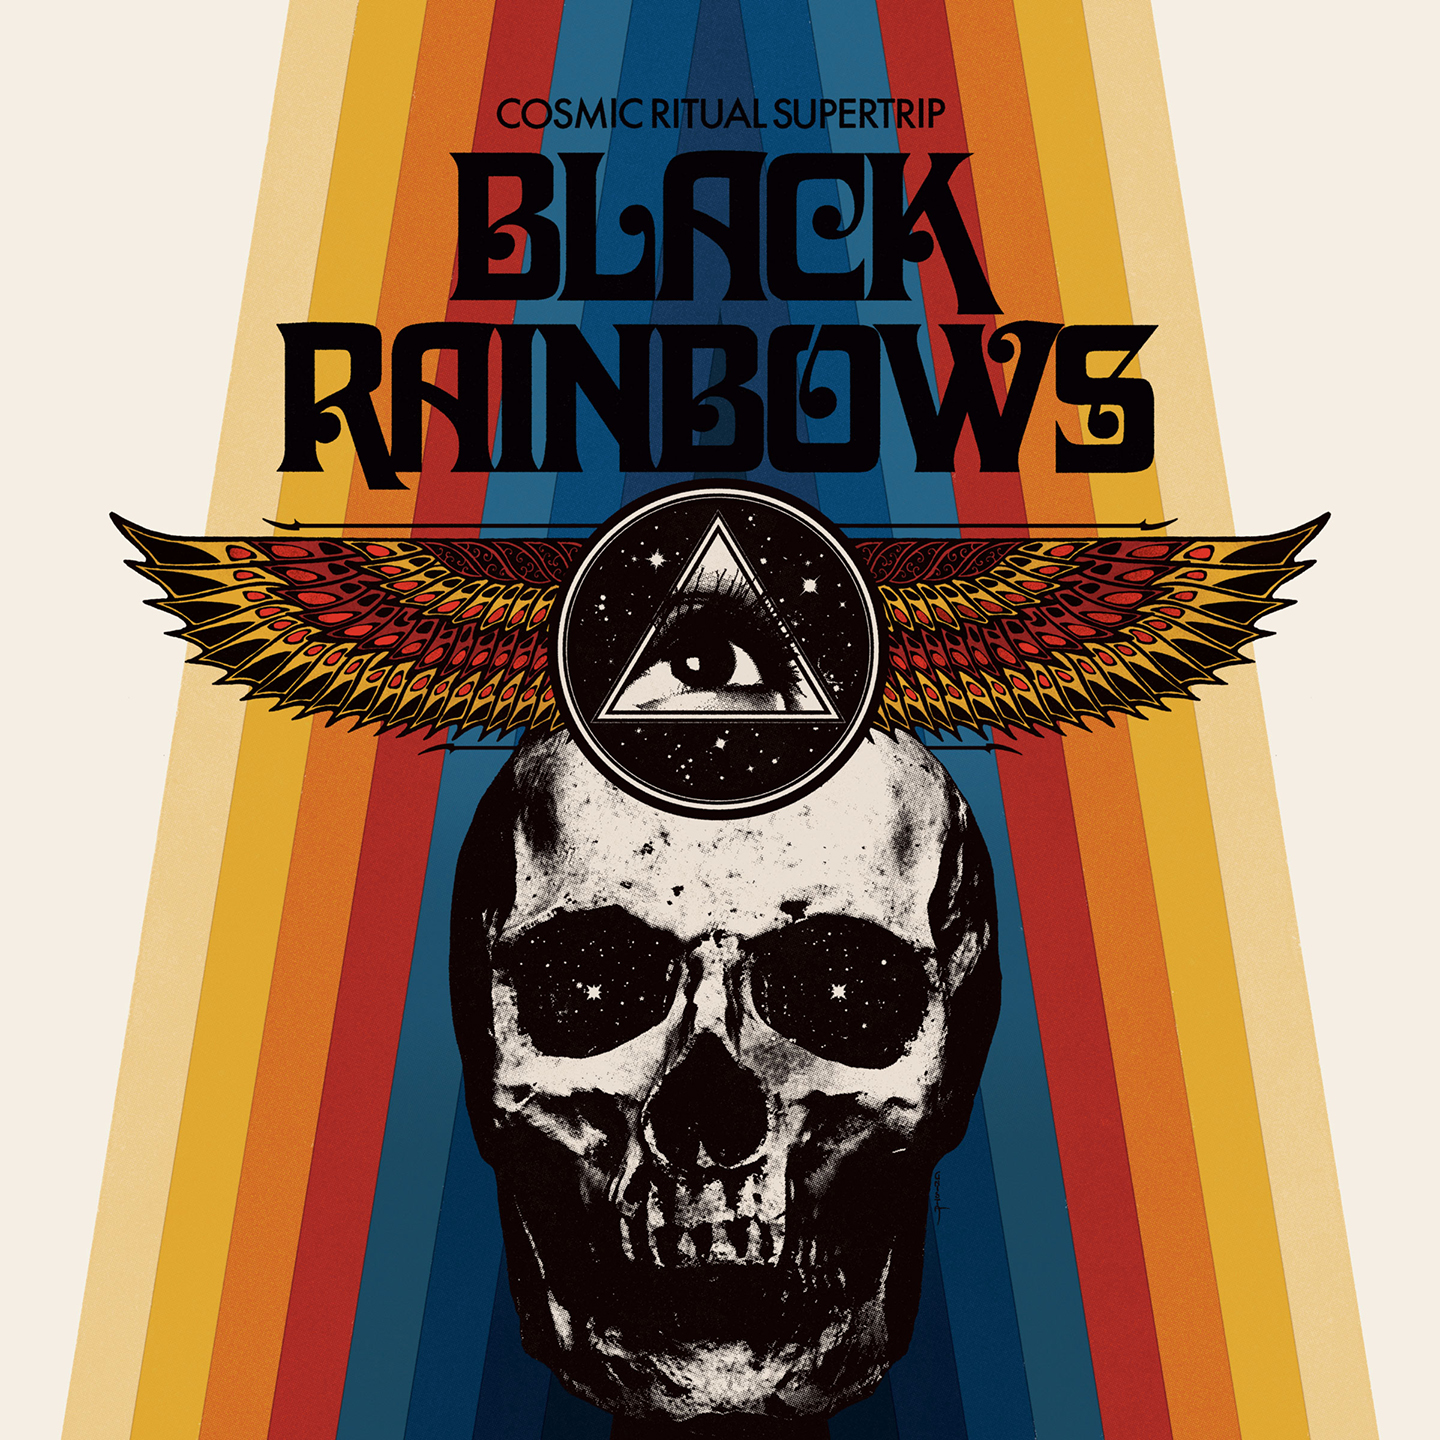 black rainbows Cosmic Ritual Supertrip